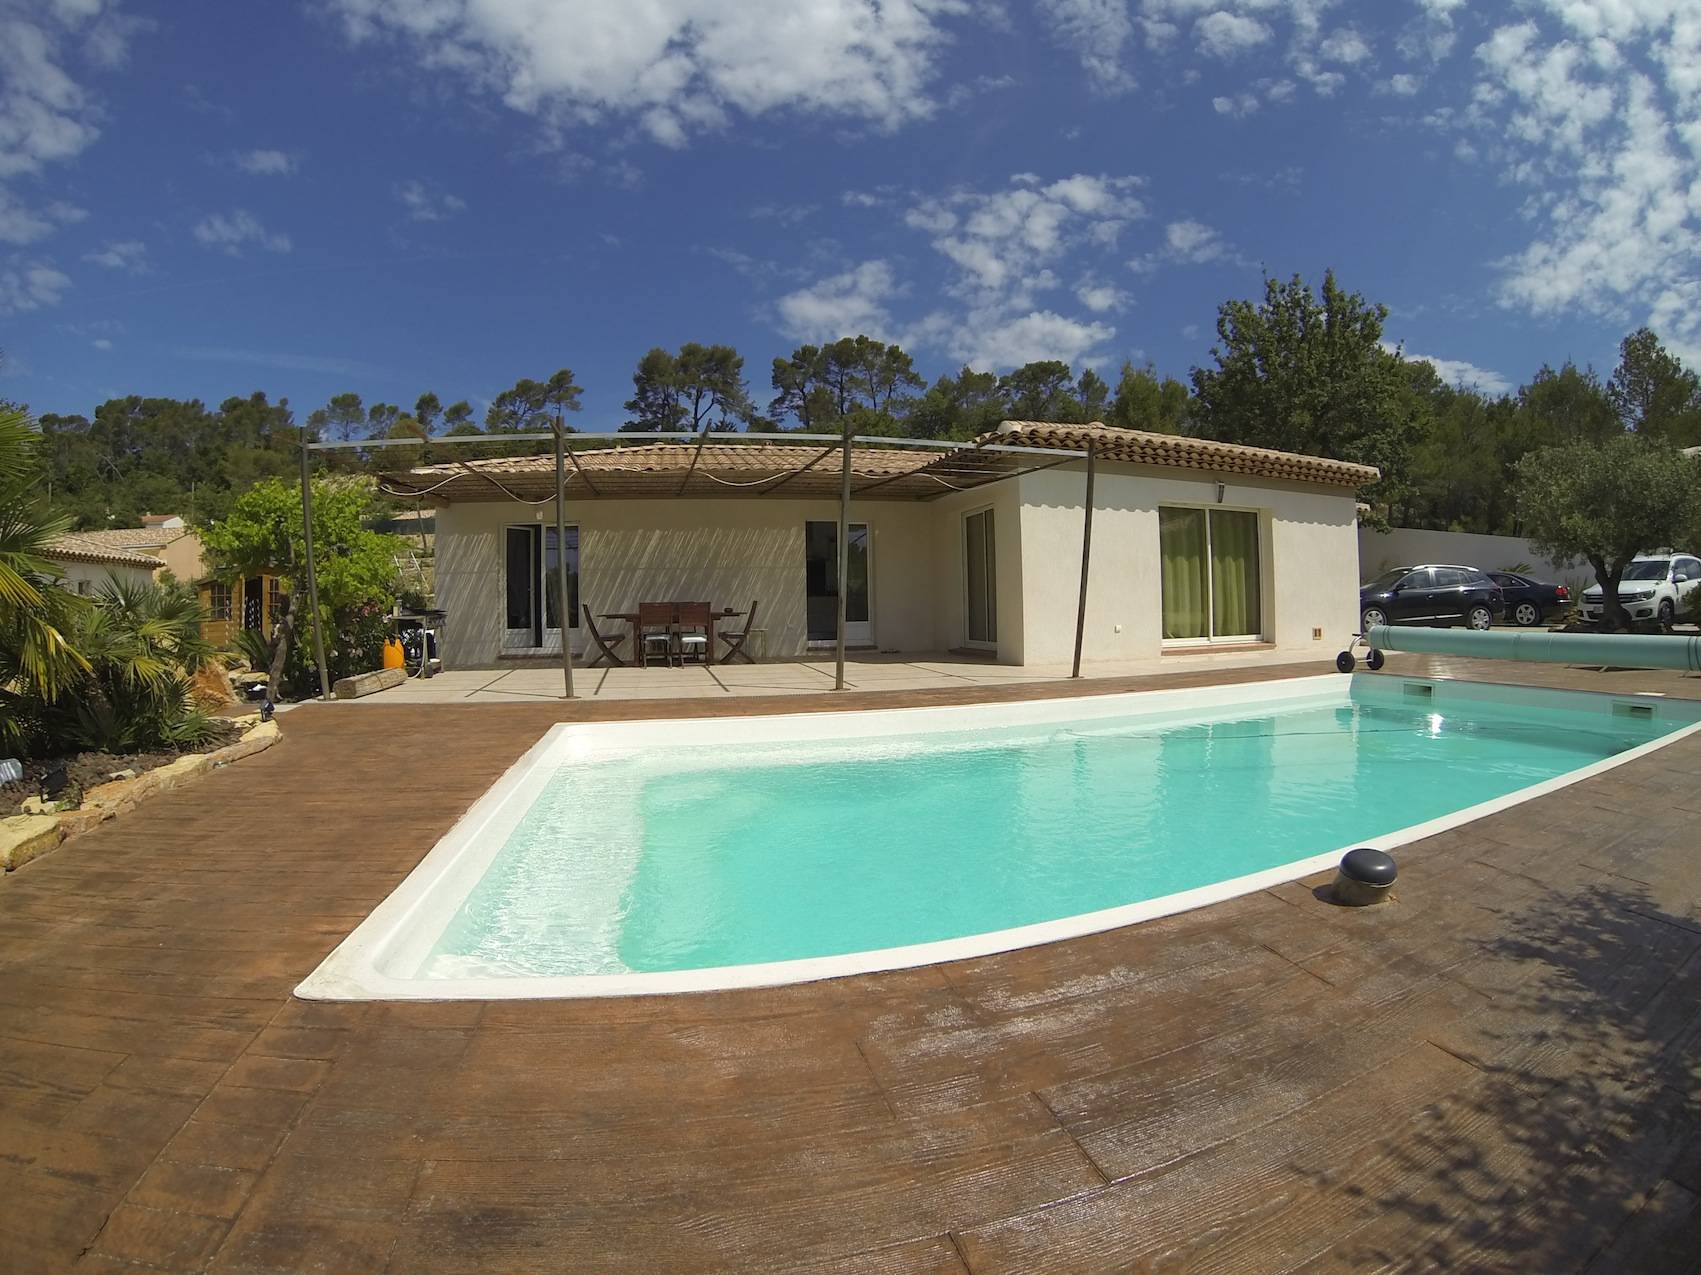 35 minutes from the seaside superb contemporary house in Provence.